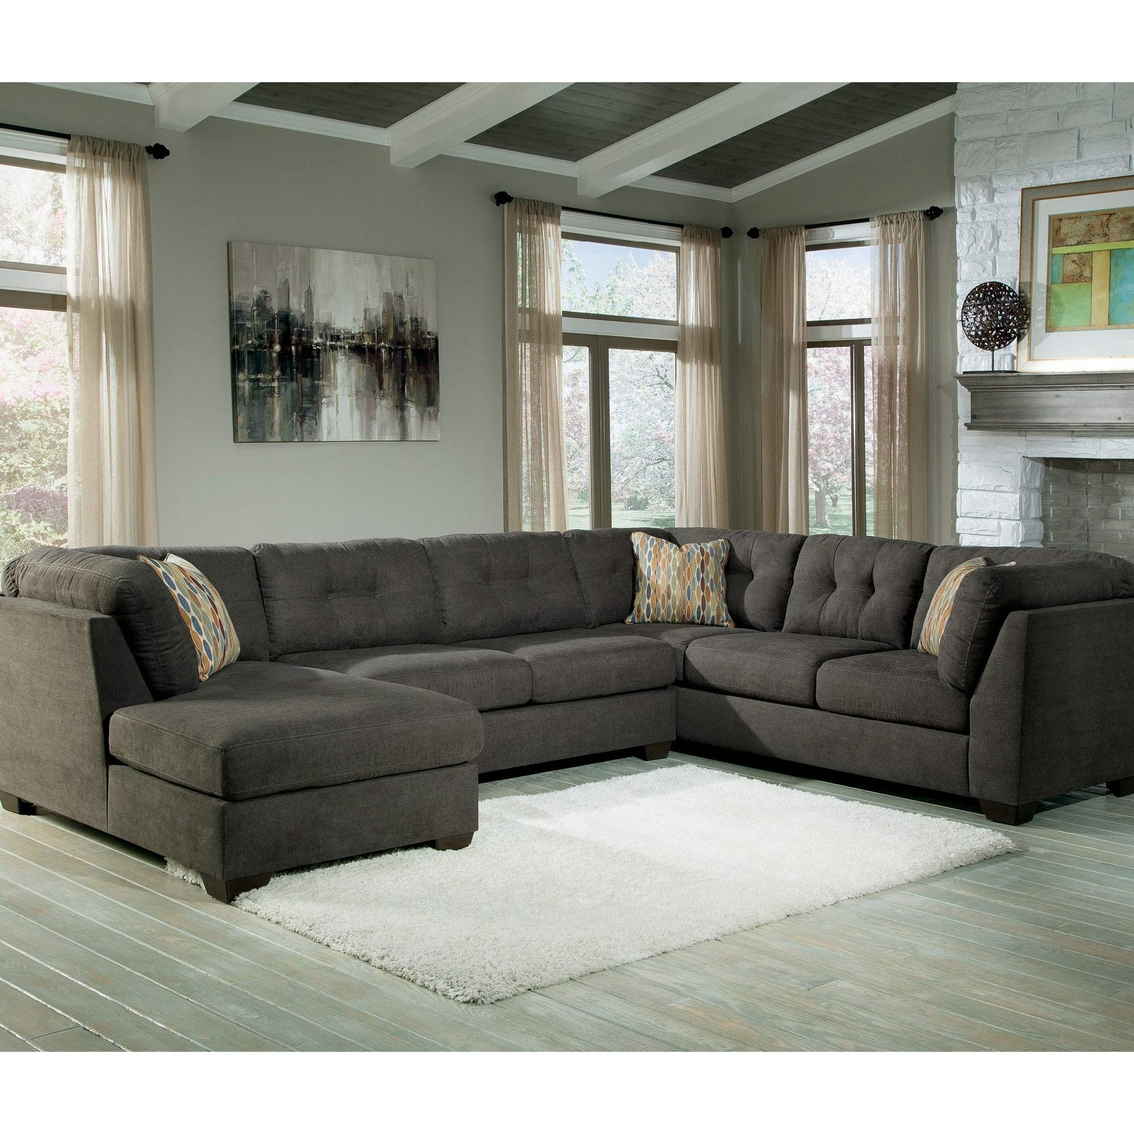 Norfolk Grey 6 Piece Sectionals With Laf Chaise With 2019 Benchcraft Delta City 3 Pc (View 16 of 20)